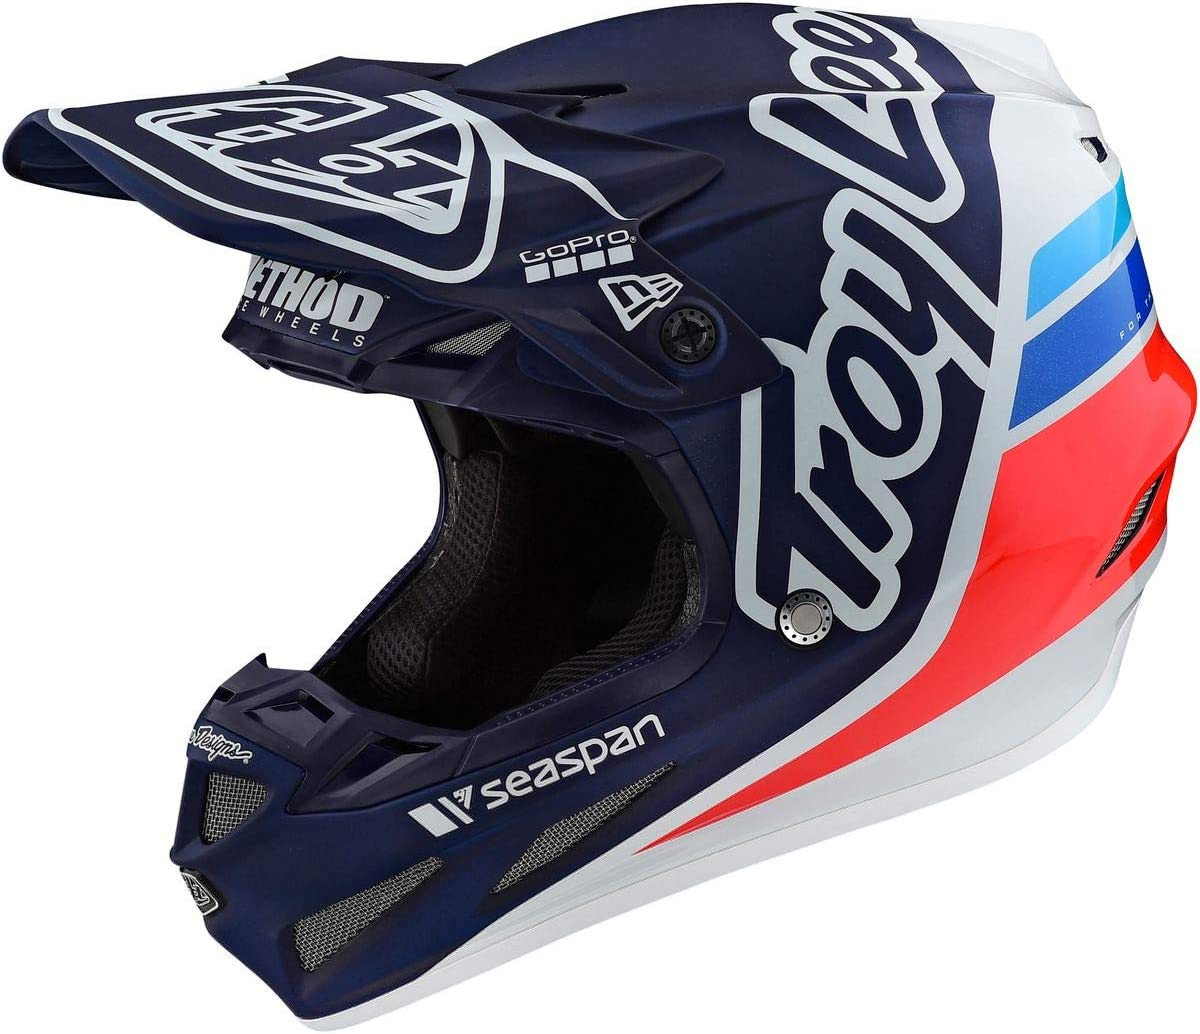 Troy Lee Designs 2020 SE4 Composite Helmet with MIPS - Silhouette Team Ed (X-Large) (Navy/White)